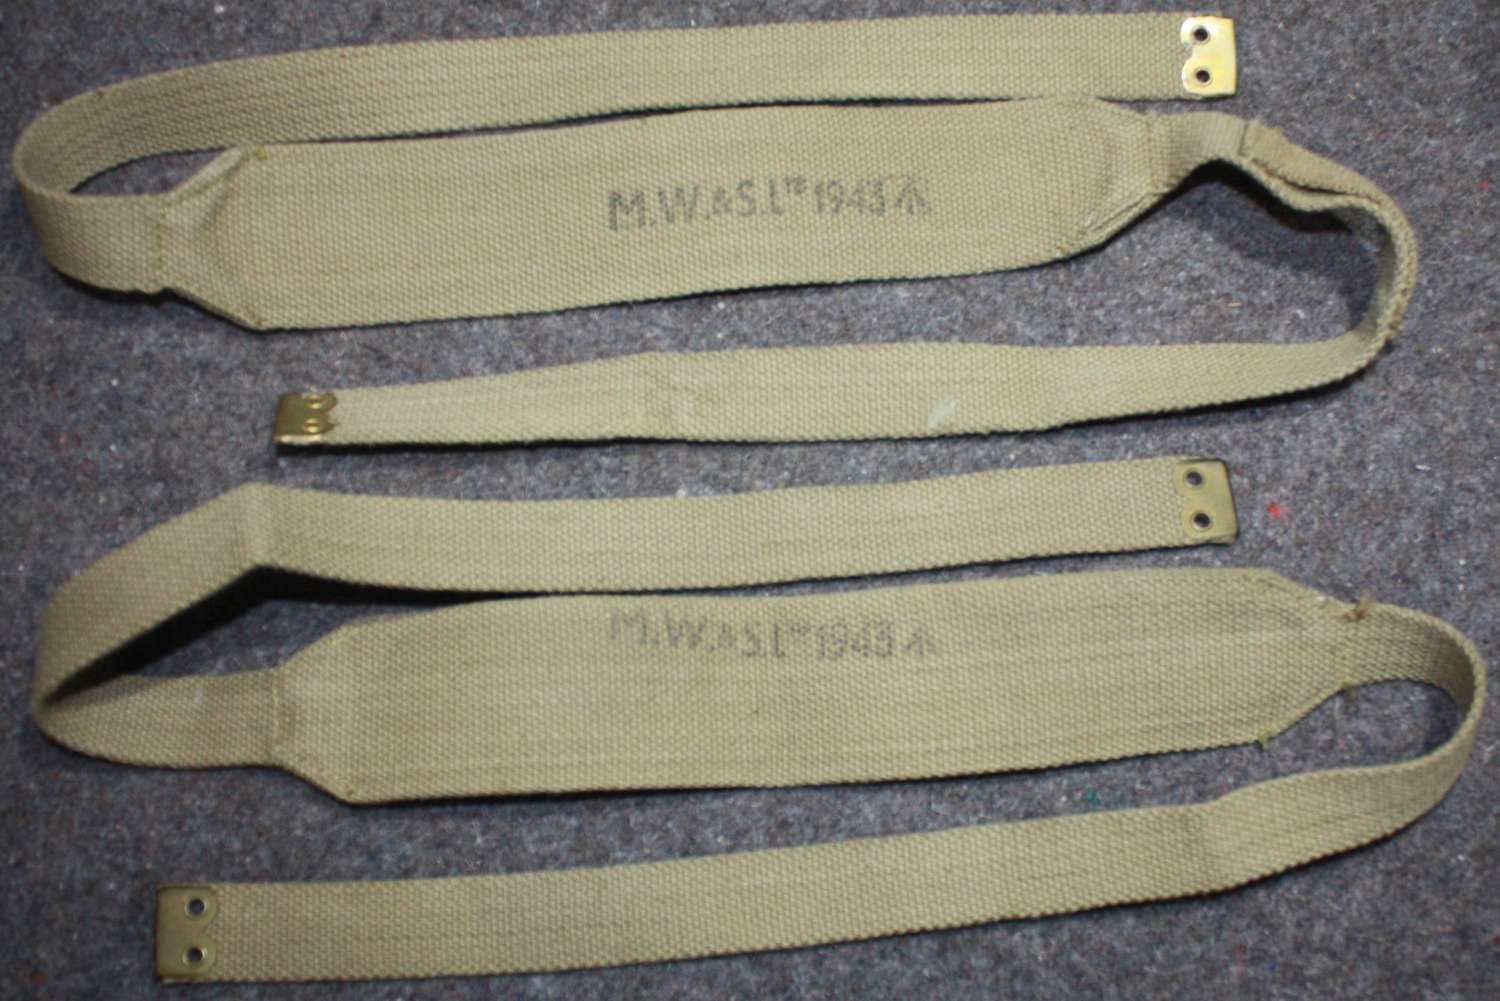 A GOOD MINT PAIR OF 37 PATTERN WEBBING SUSPENDERS MADE BY MWS 1943